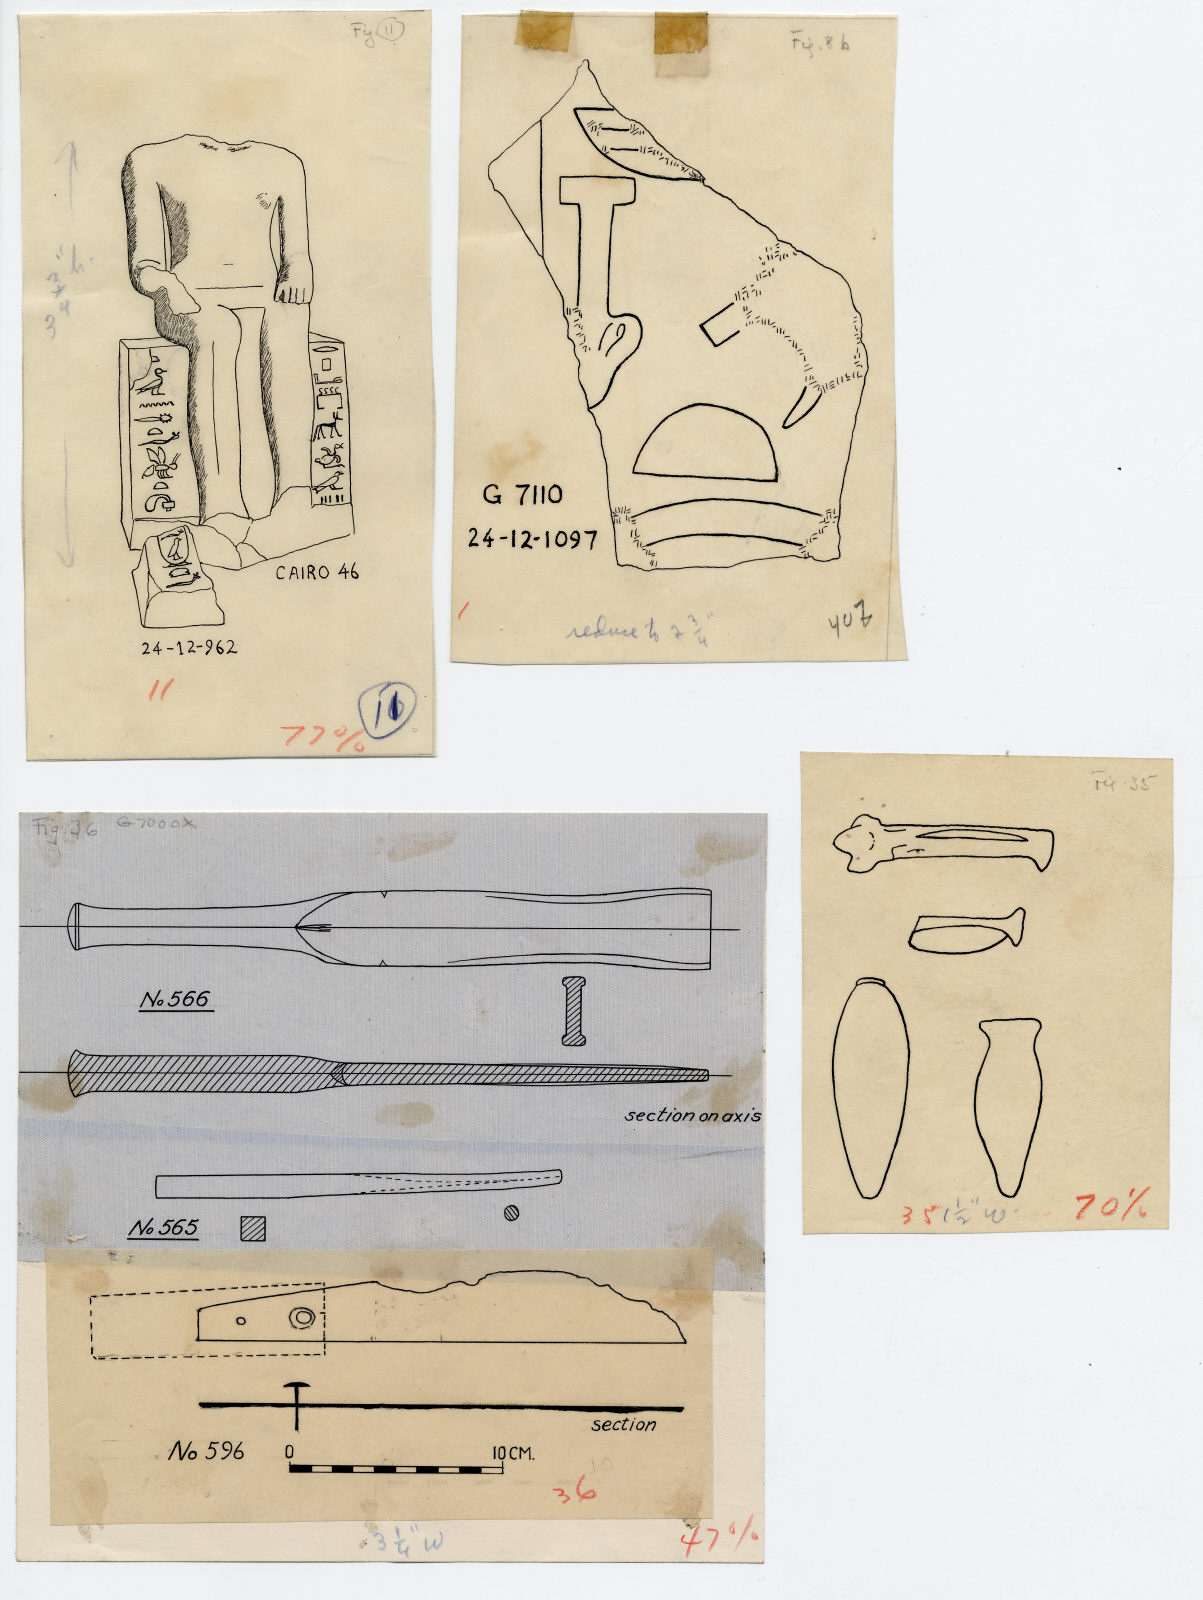 Drawings: Relief from G 7000 X; G 7130, Shaft X (= G 7133); Isis Temple; G 7110